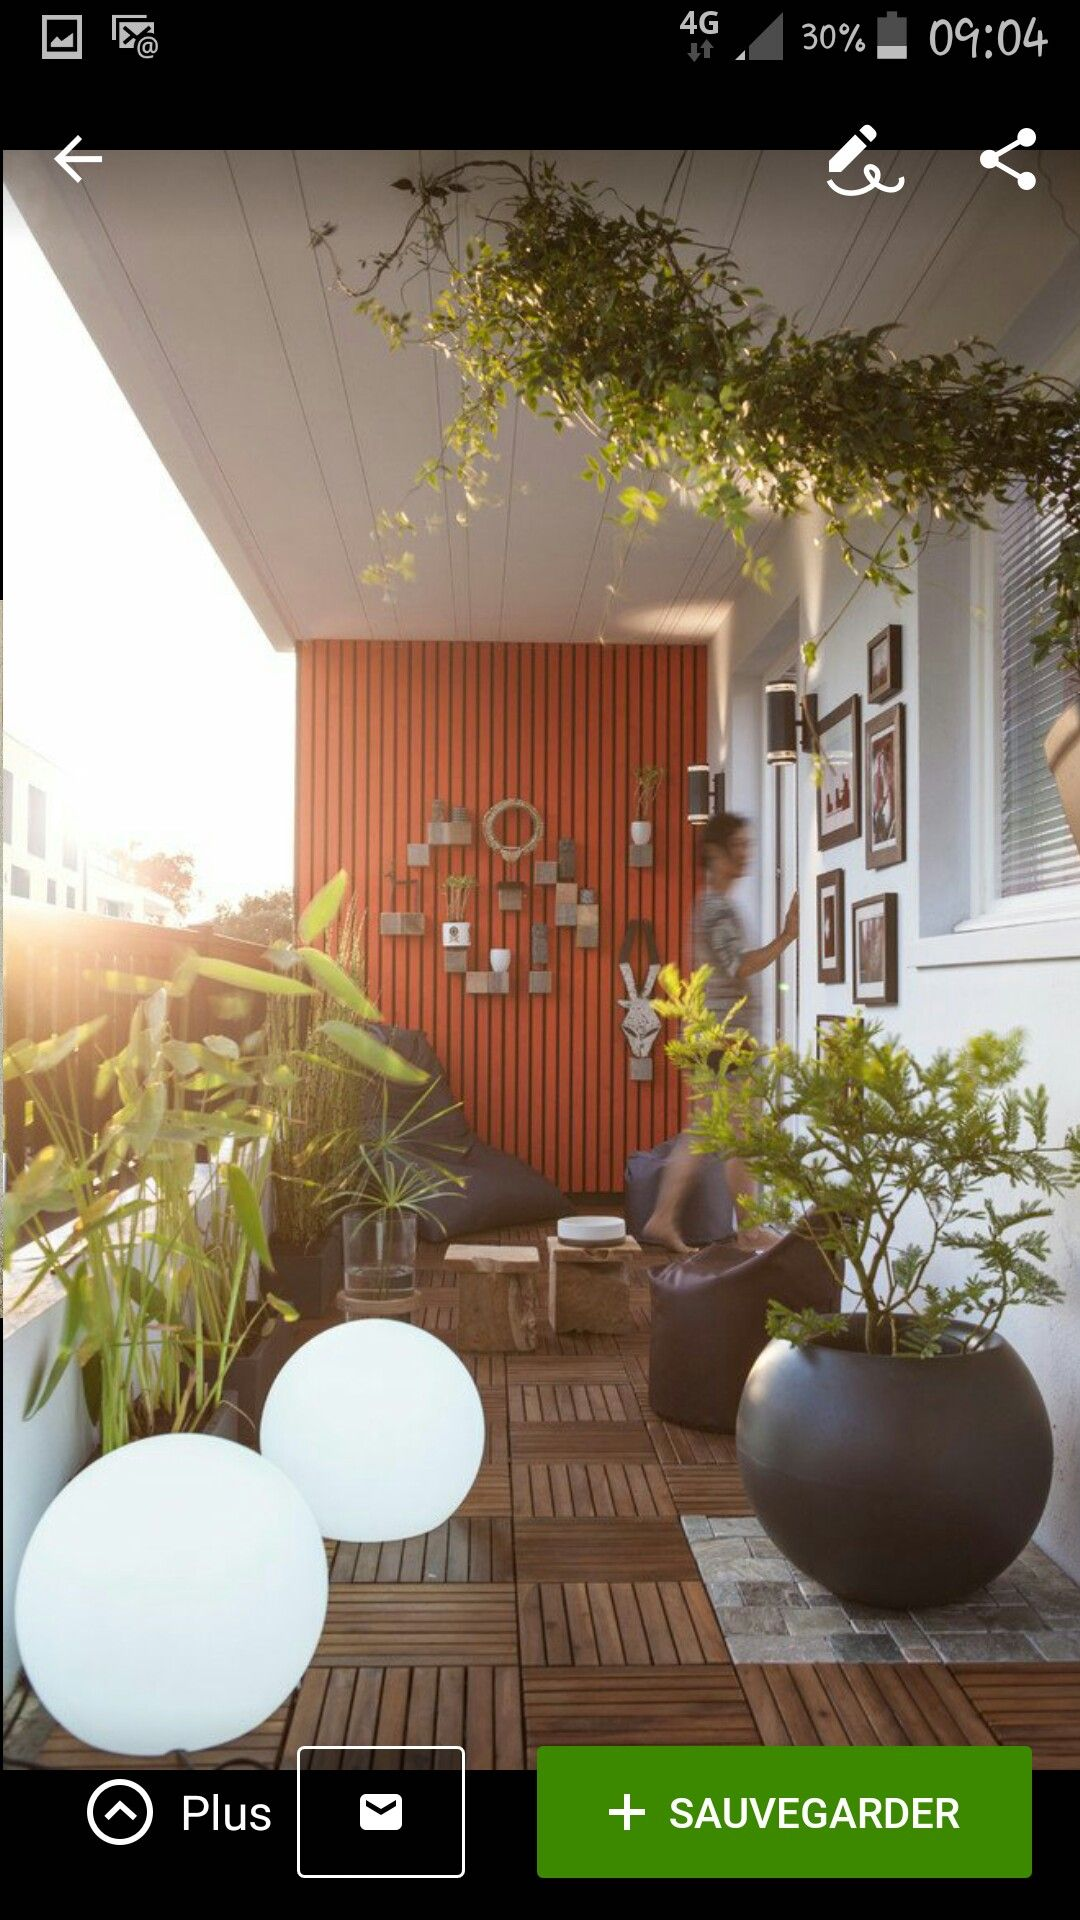 Apartment balcony ideas pictures to pin on pinterest - Apartment Balconies Sky Living The Balcony Ideas Living Room Patios Ideas Para Balcony Terraces